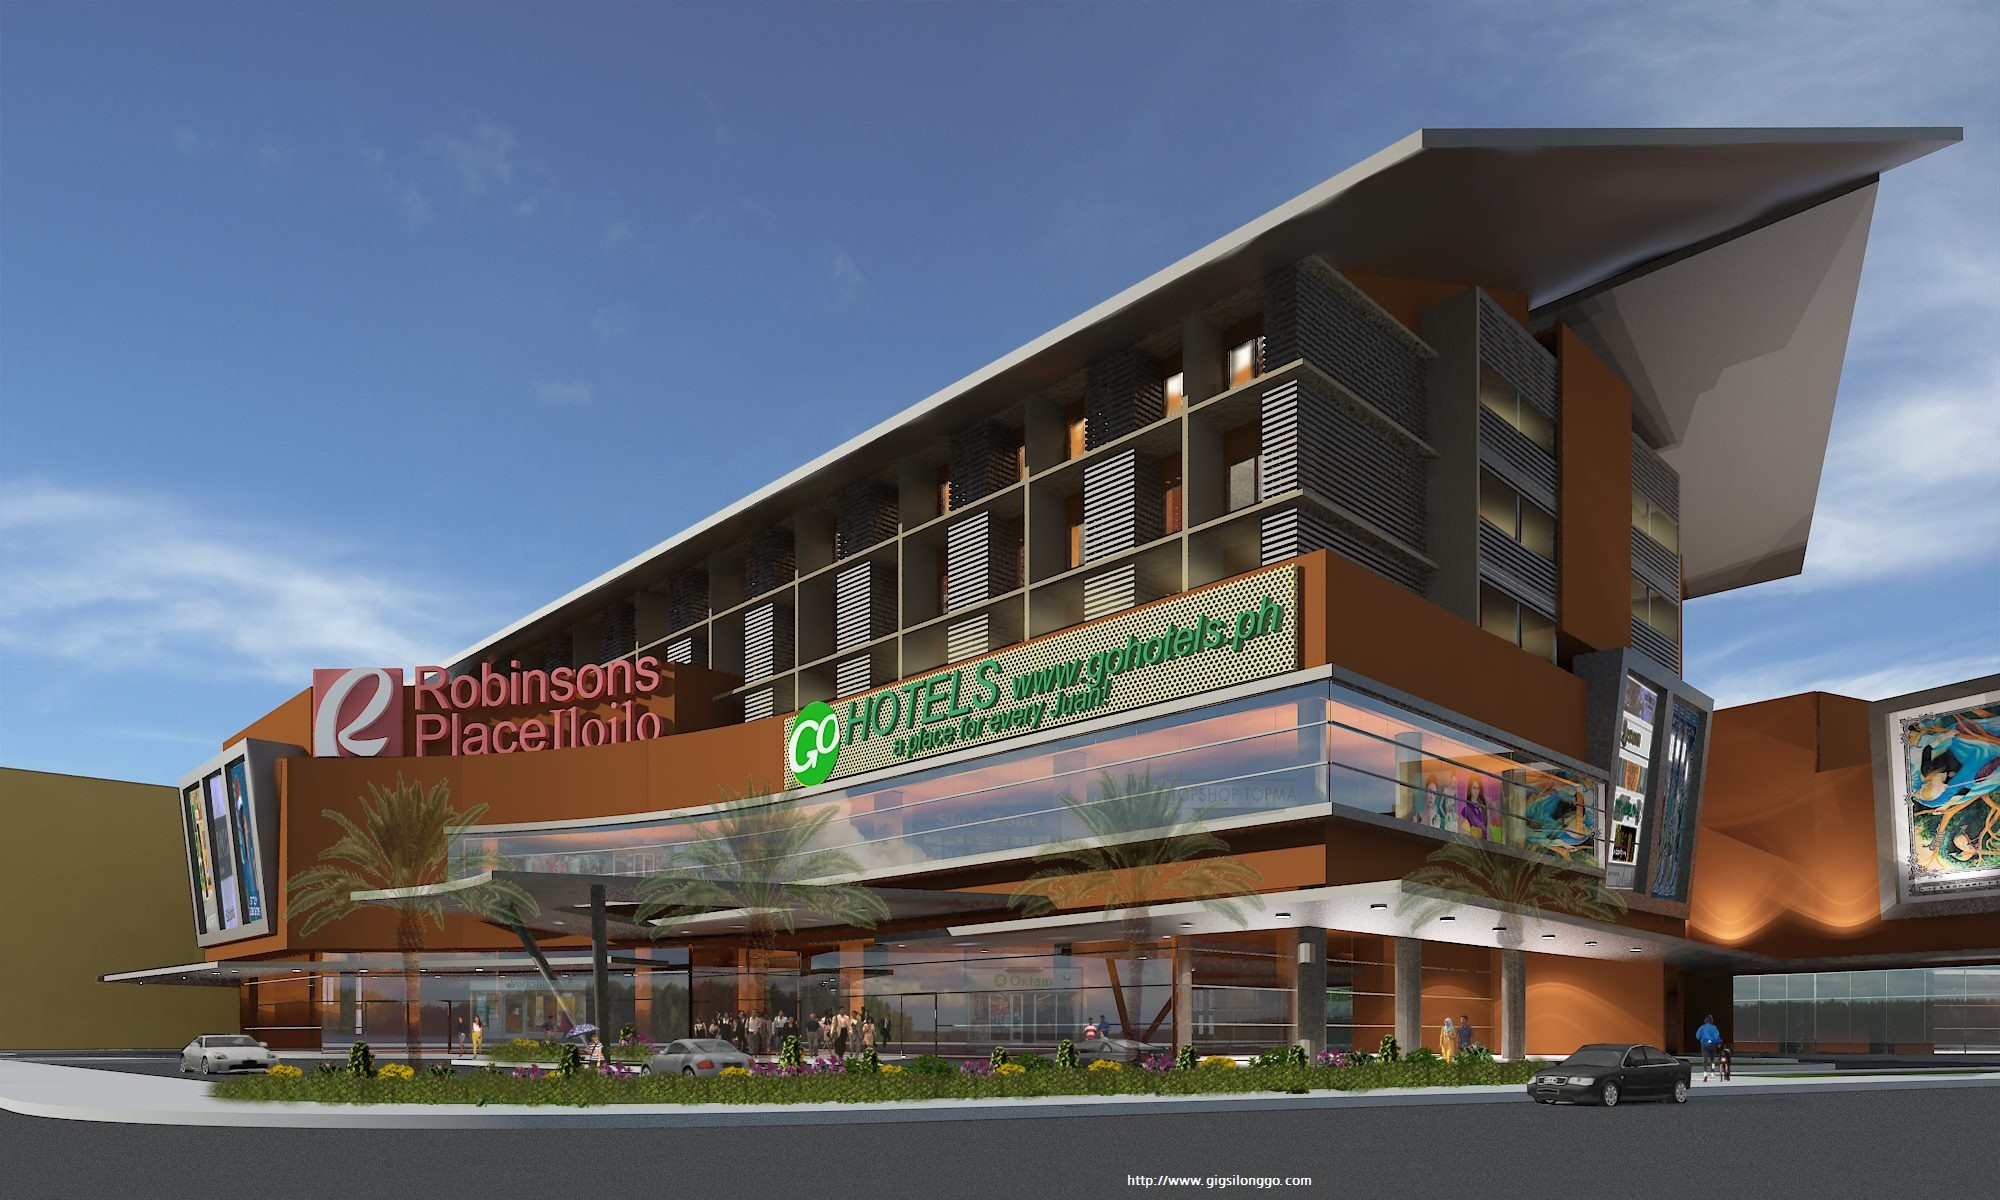 Robinsons Iloilo expansion w/ Go Hotels Official Rendering